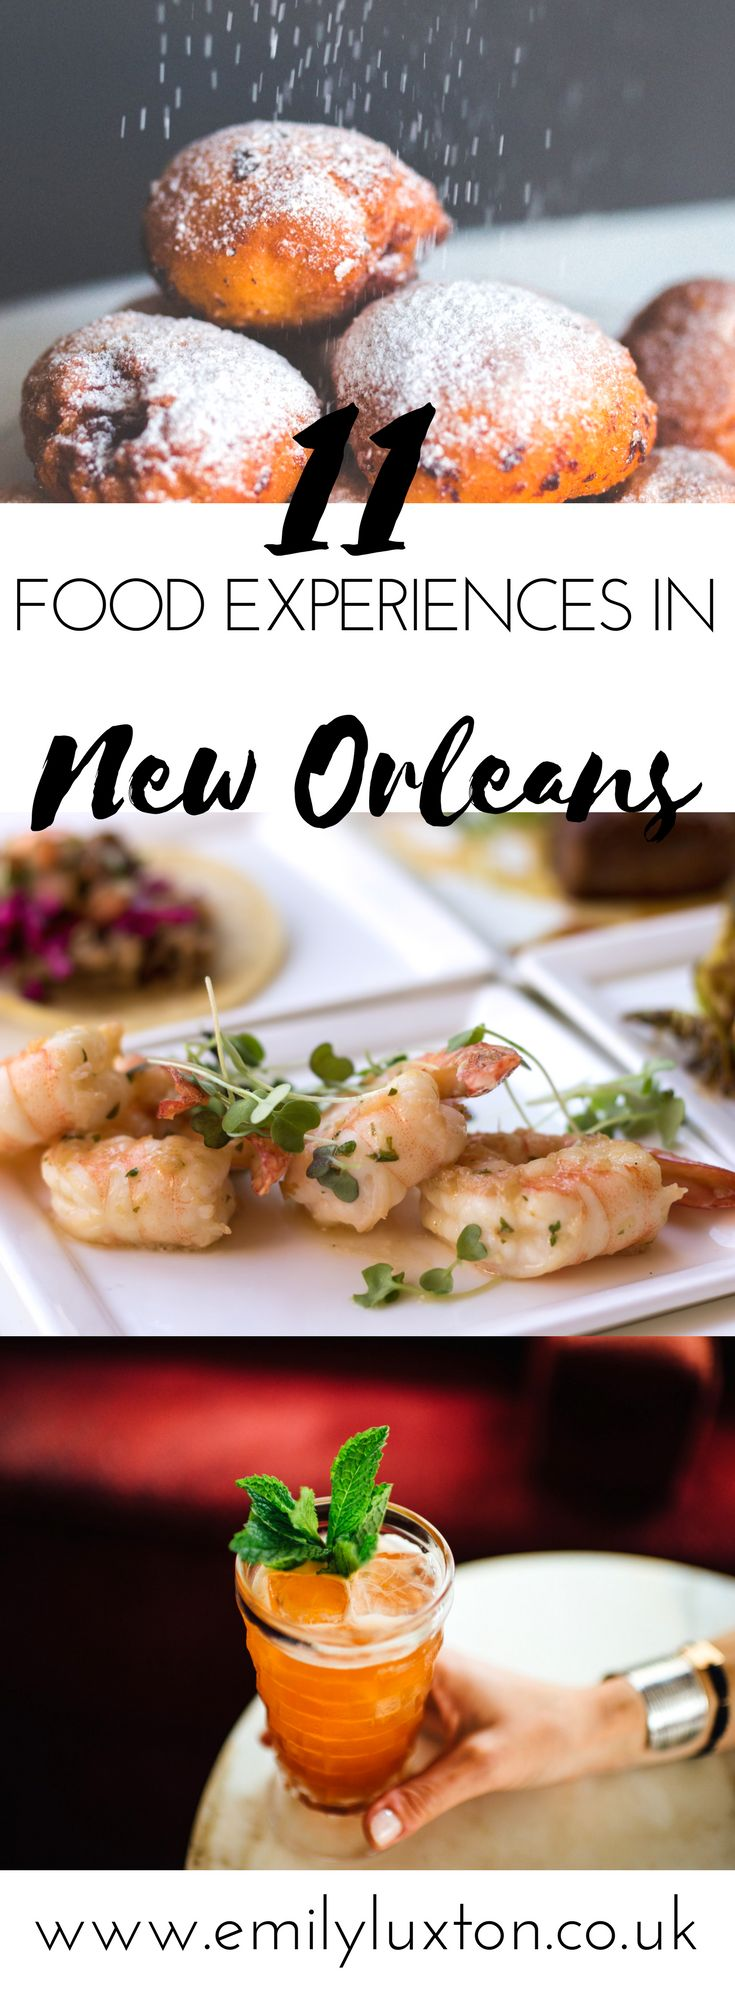 New Orleans Food Guide - 11 unmissable food and drink experiences. Everywhere you need to eat and drink in the Big Easy | #neworleans #nola #food